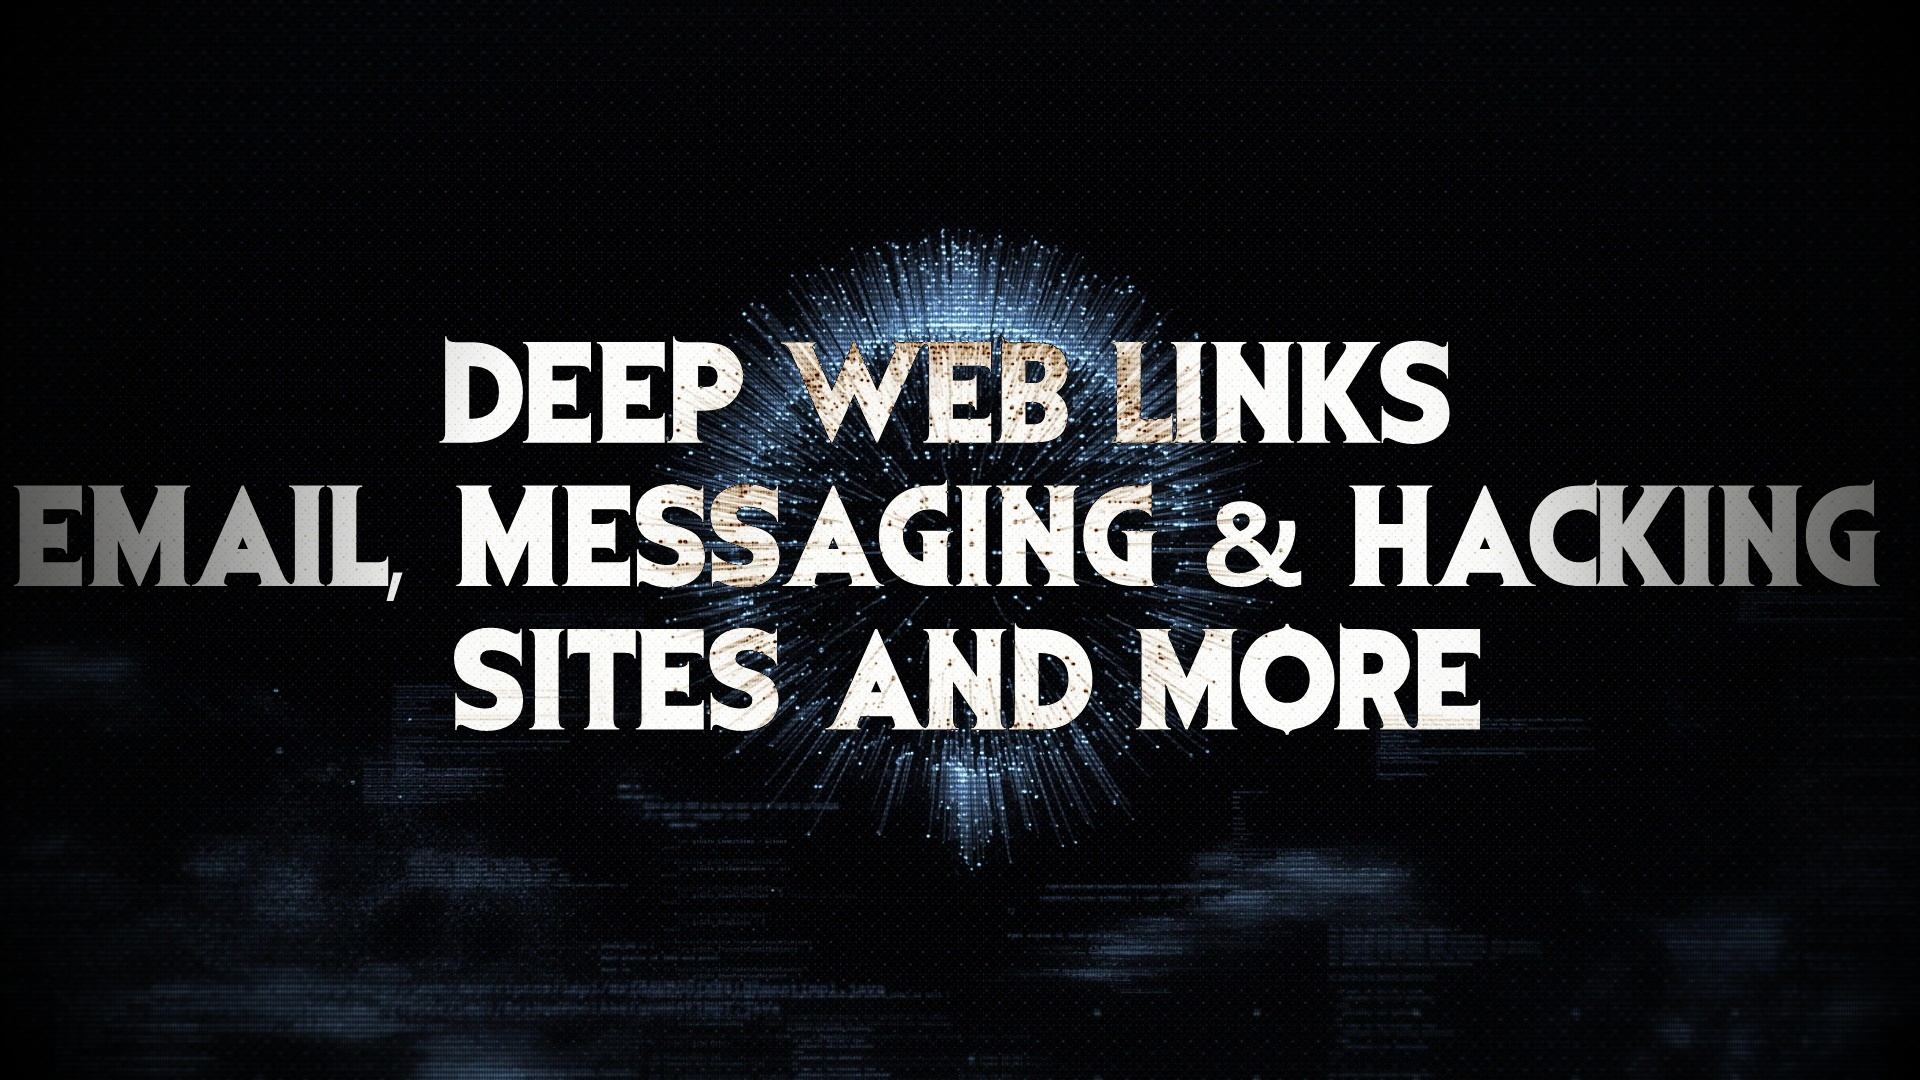 onion deep web onion links, onion links, deep web onion, deep web links onion, dark internet